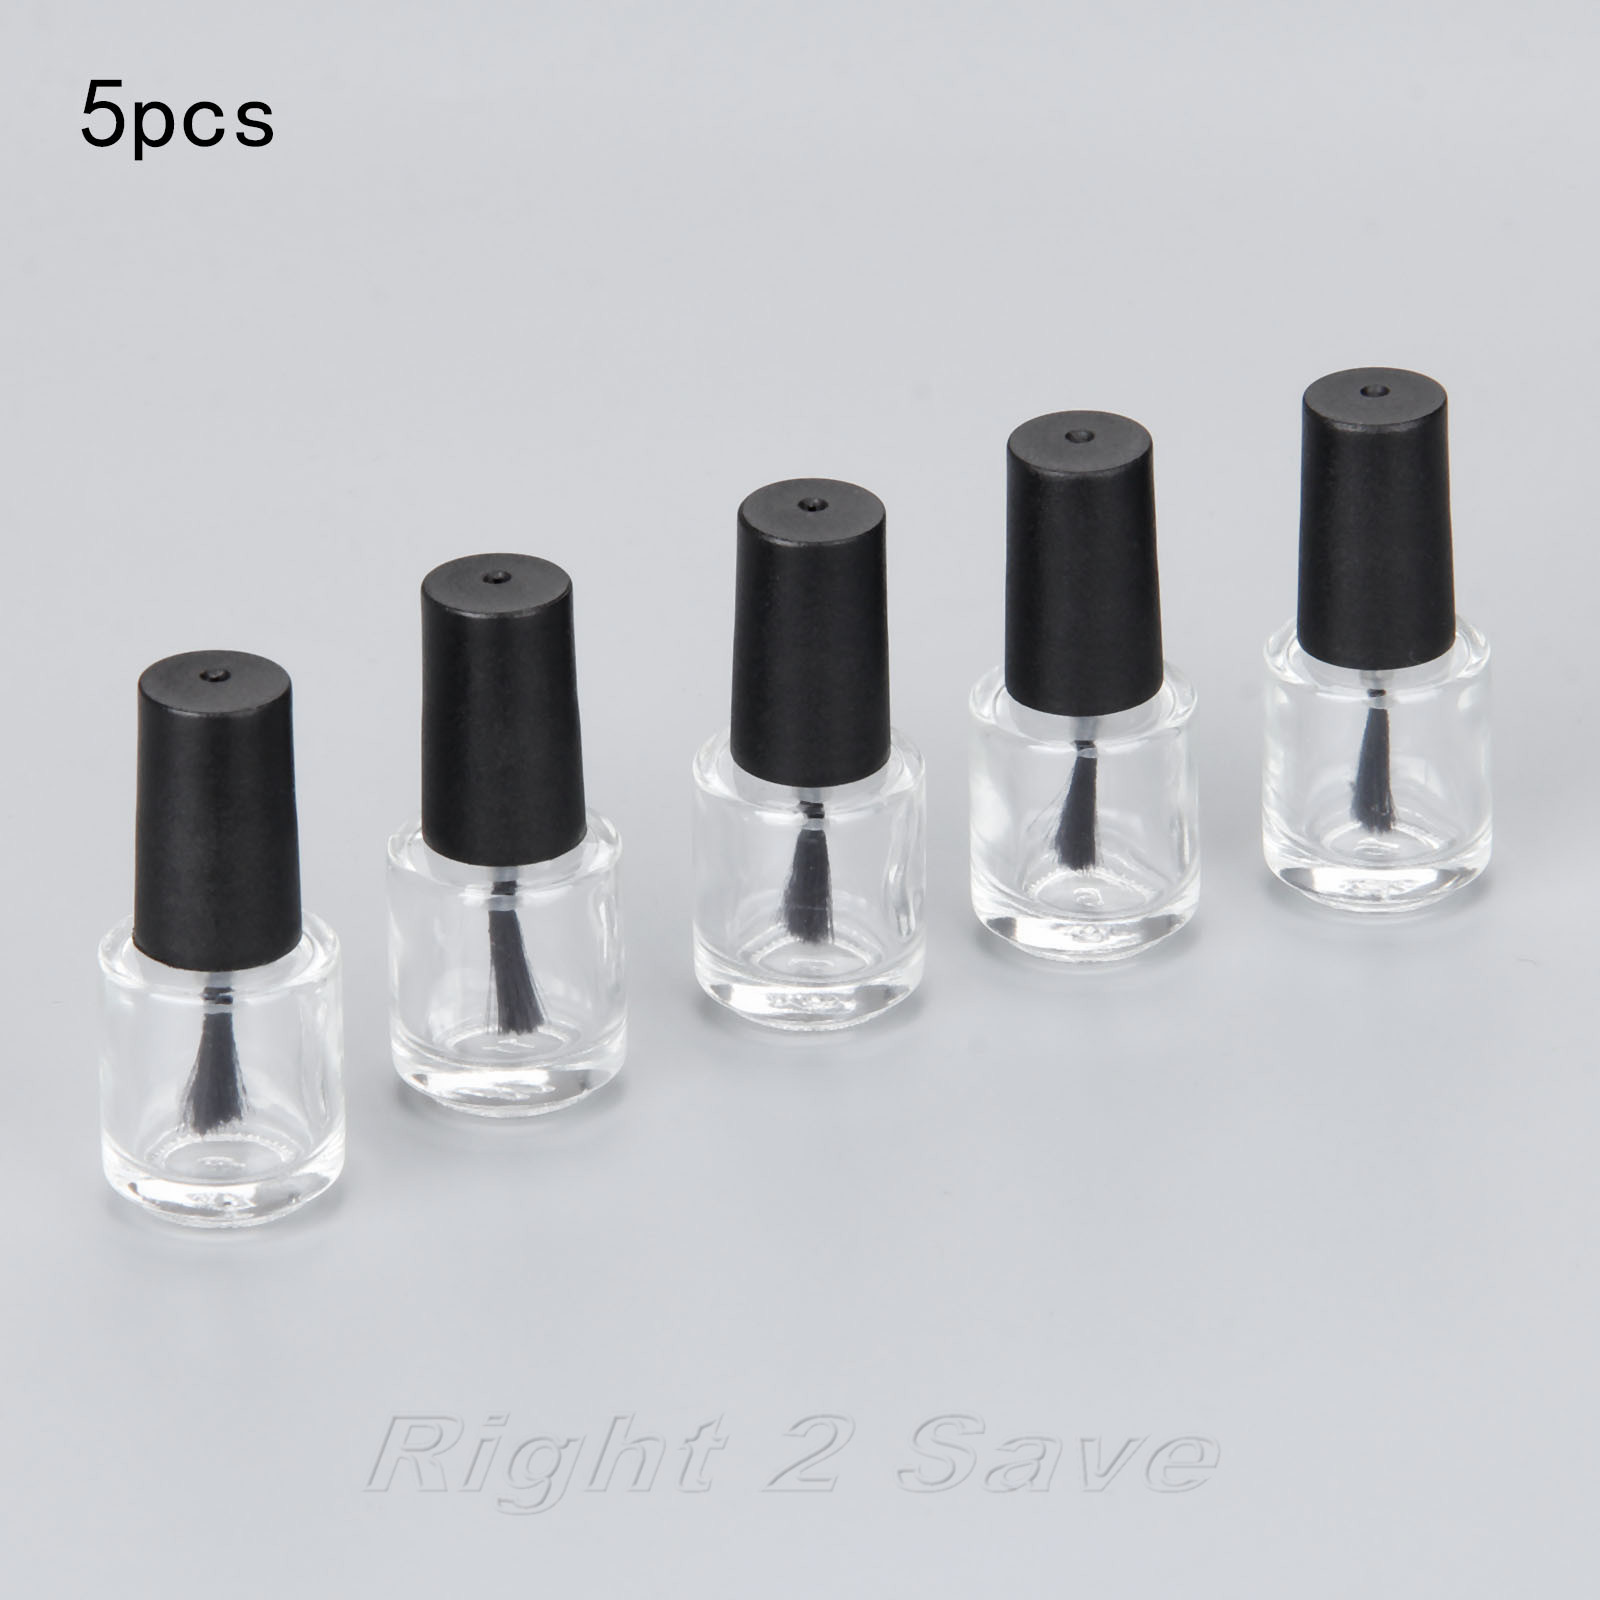 5PCS/lot 5ML Nail Polish Bottle With Brush Refillable Empty Cosmetic Containor Transparent Glass Bottle Nail Art Manicure Tool